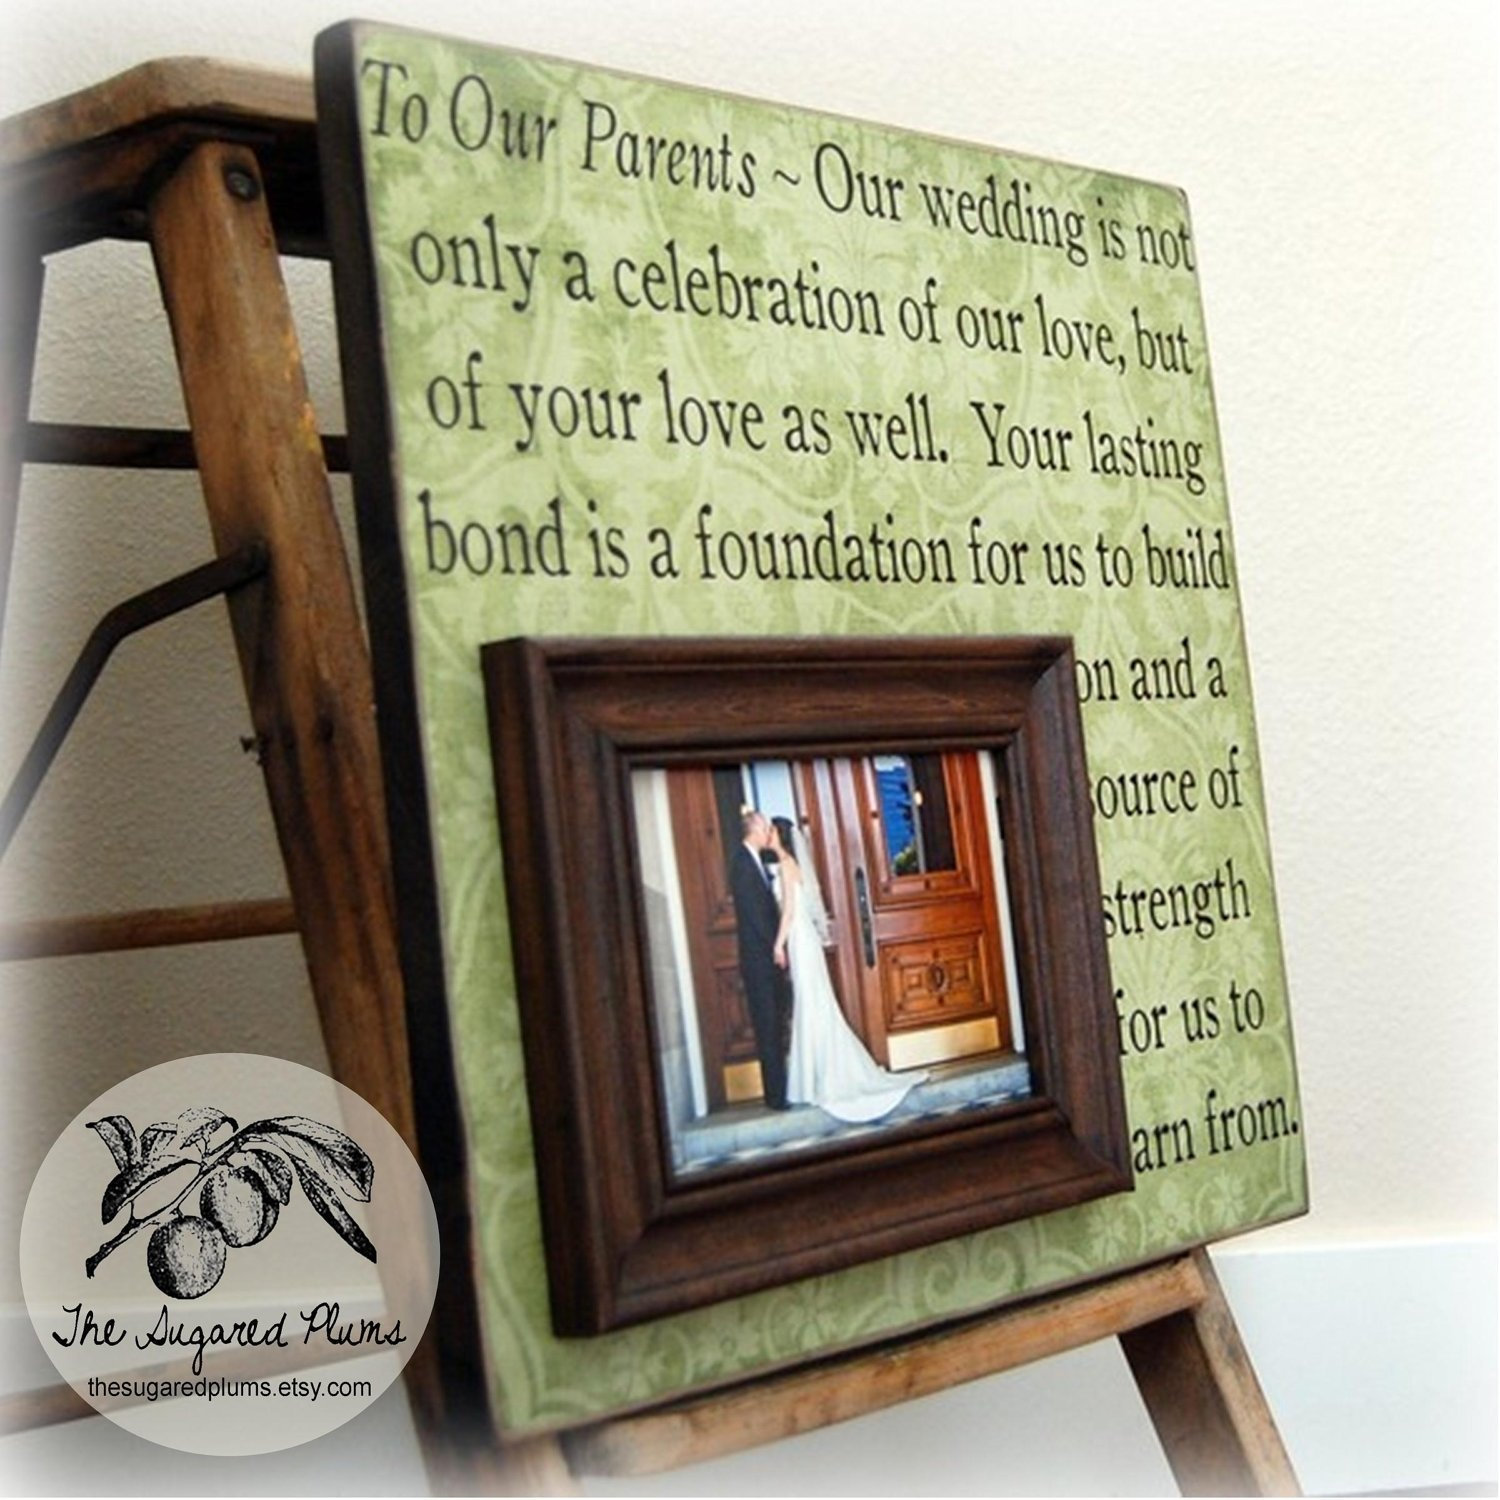 10 Pretty Anniversary Gift Ideas For Parents unique 50th wedding anniversary gift ideas for parents b95 on images 4 2020